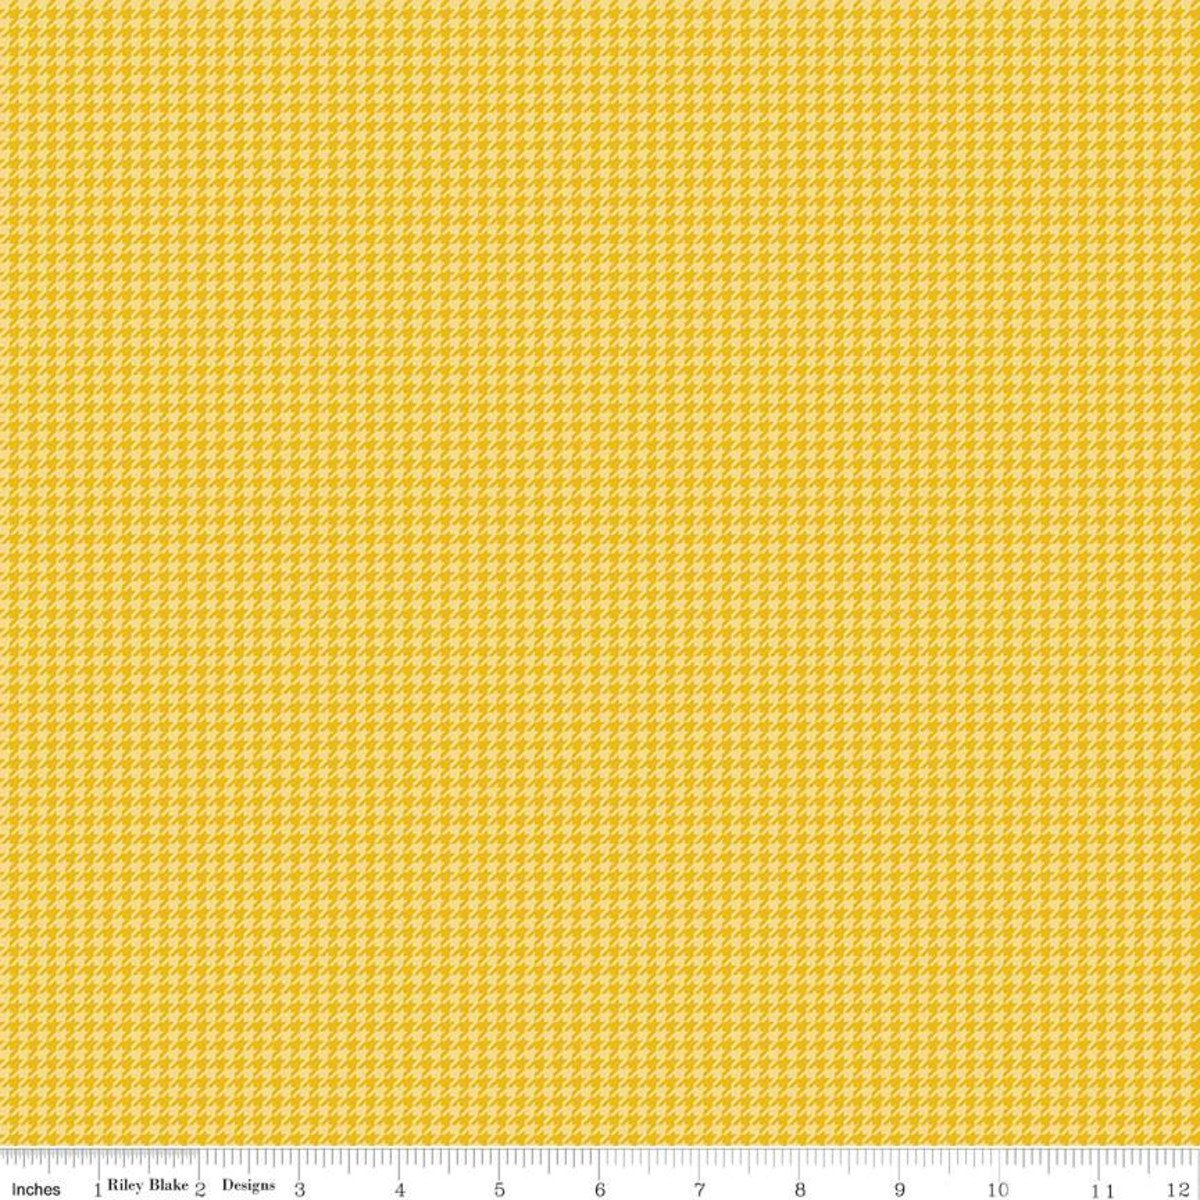 Petals & Pedals Houndstooth Yellow